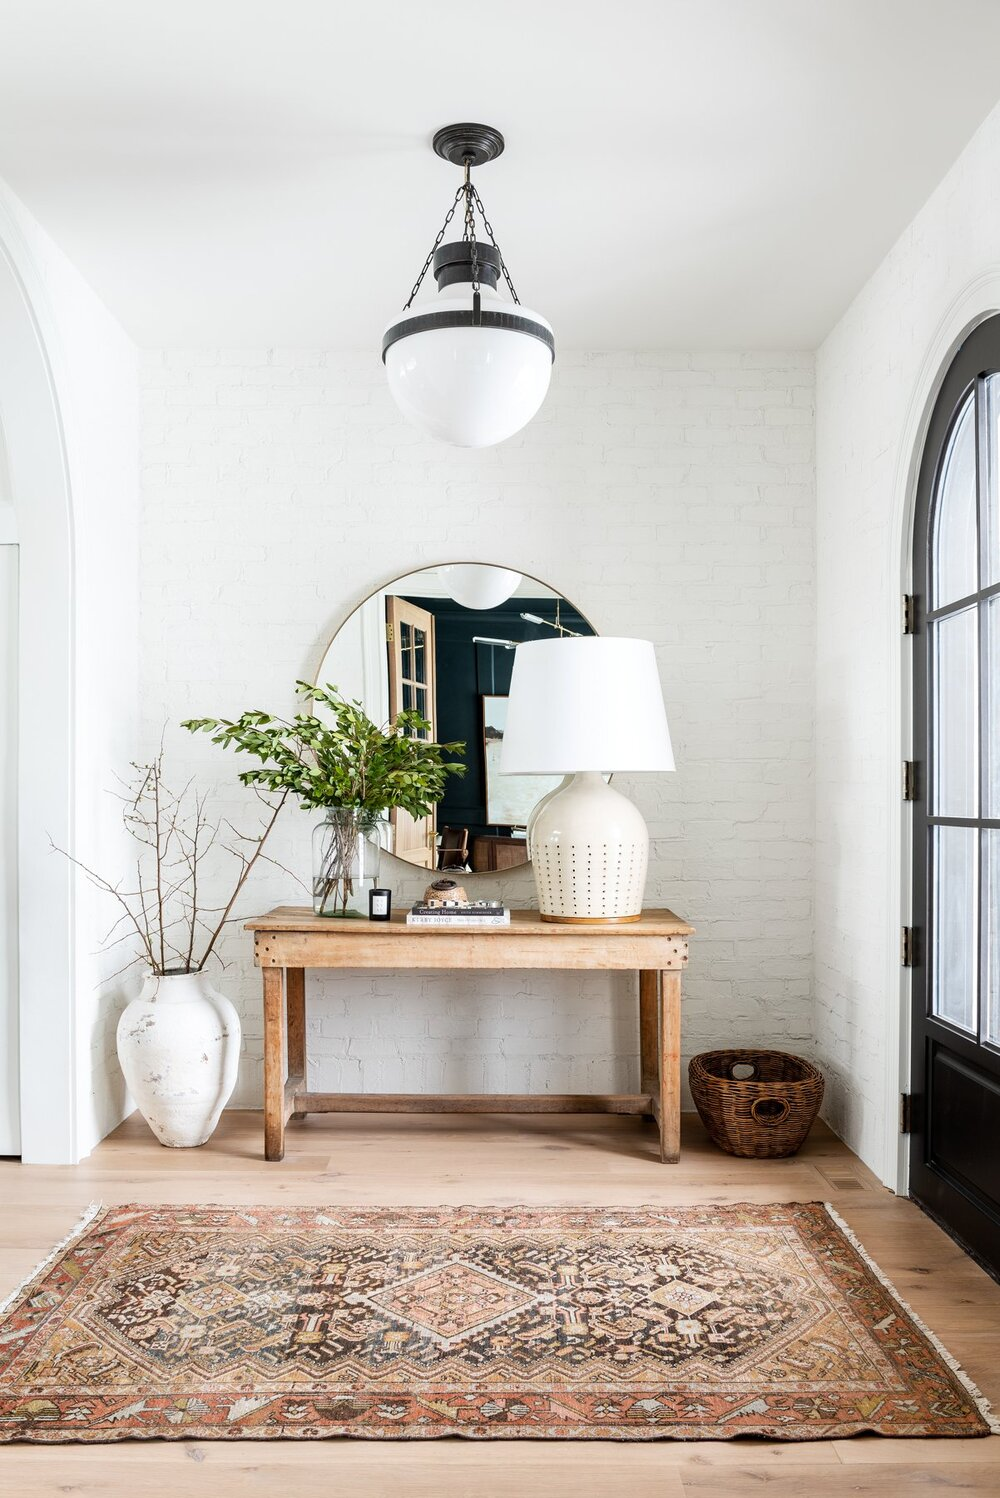 Tour the McGee Home Entryway